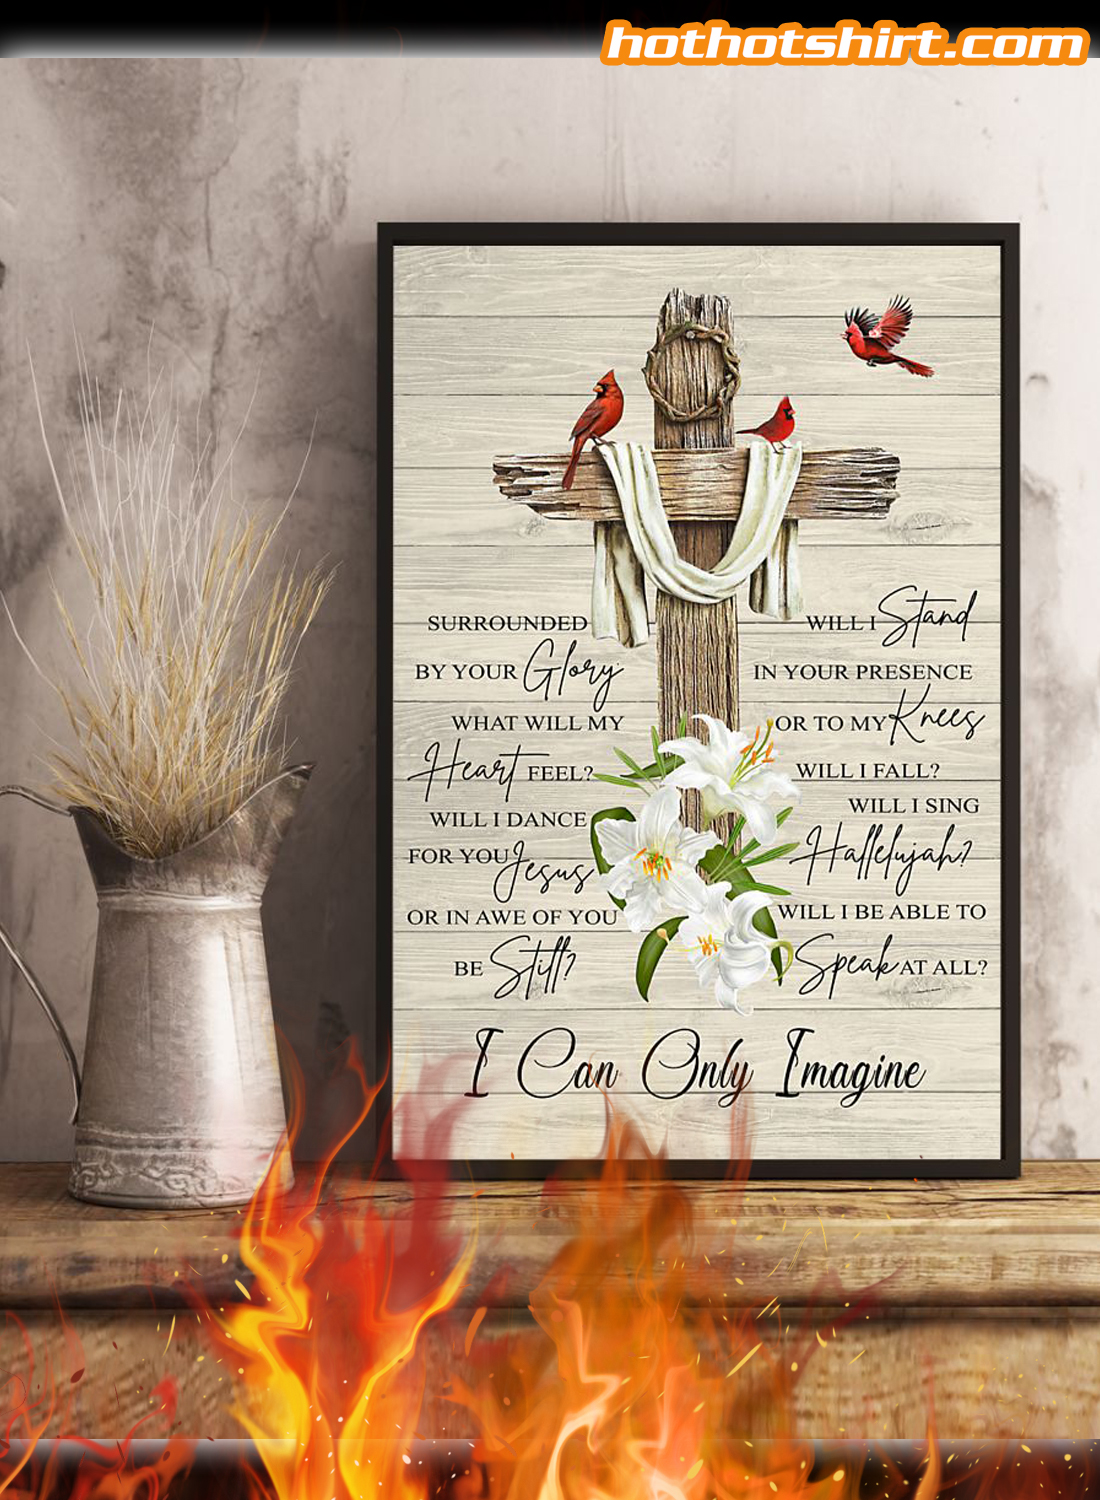 Cardinal Bird And Jesus I can only imagine poster 1